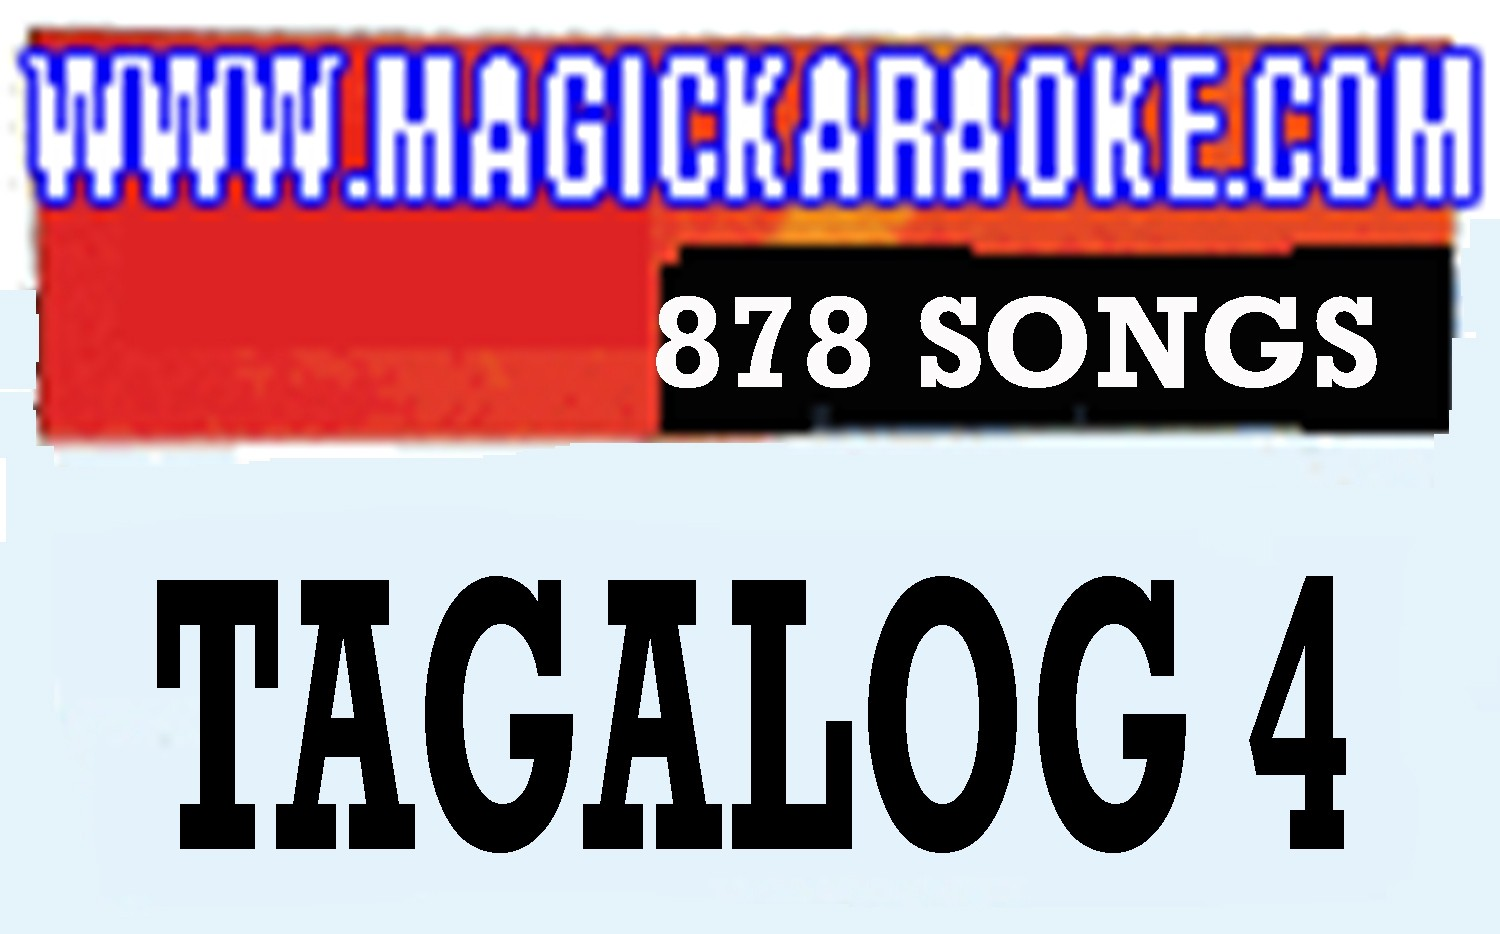 Magic Sing Tagalog 4 875 SONGS